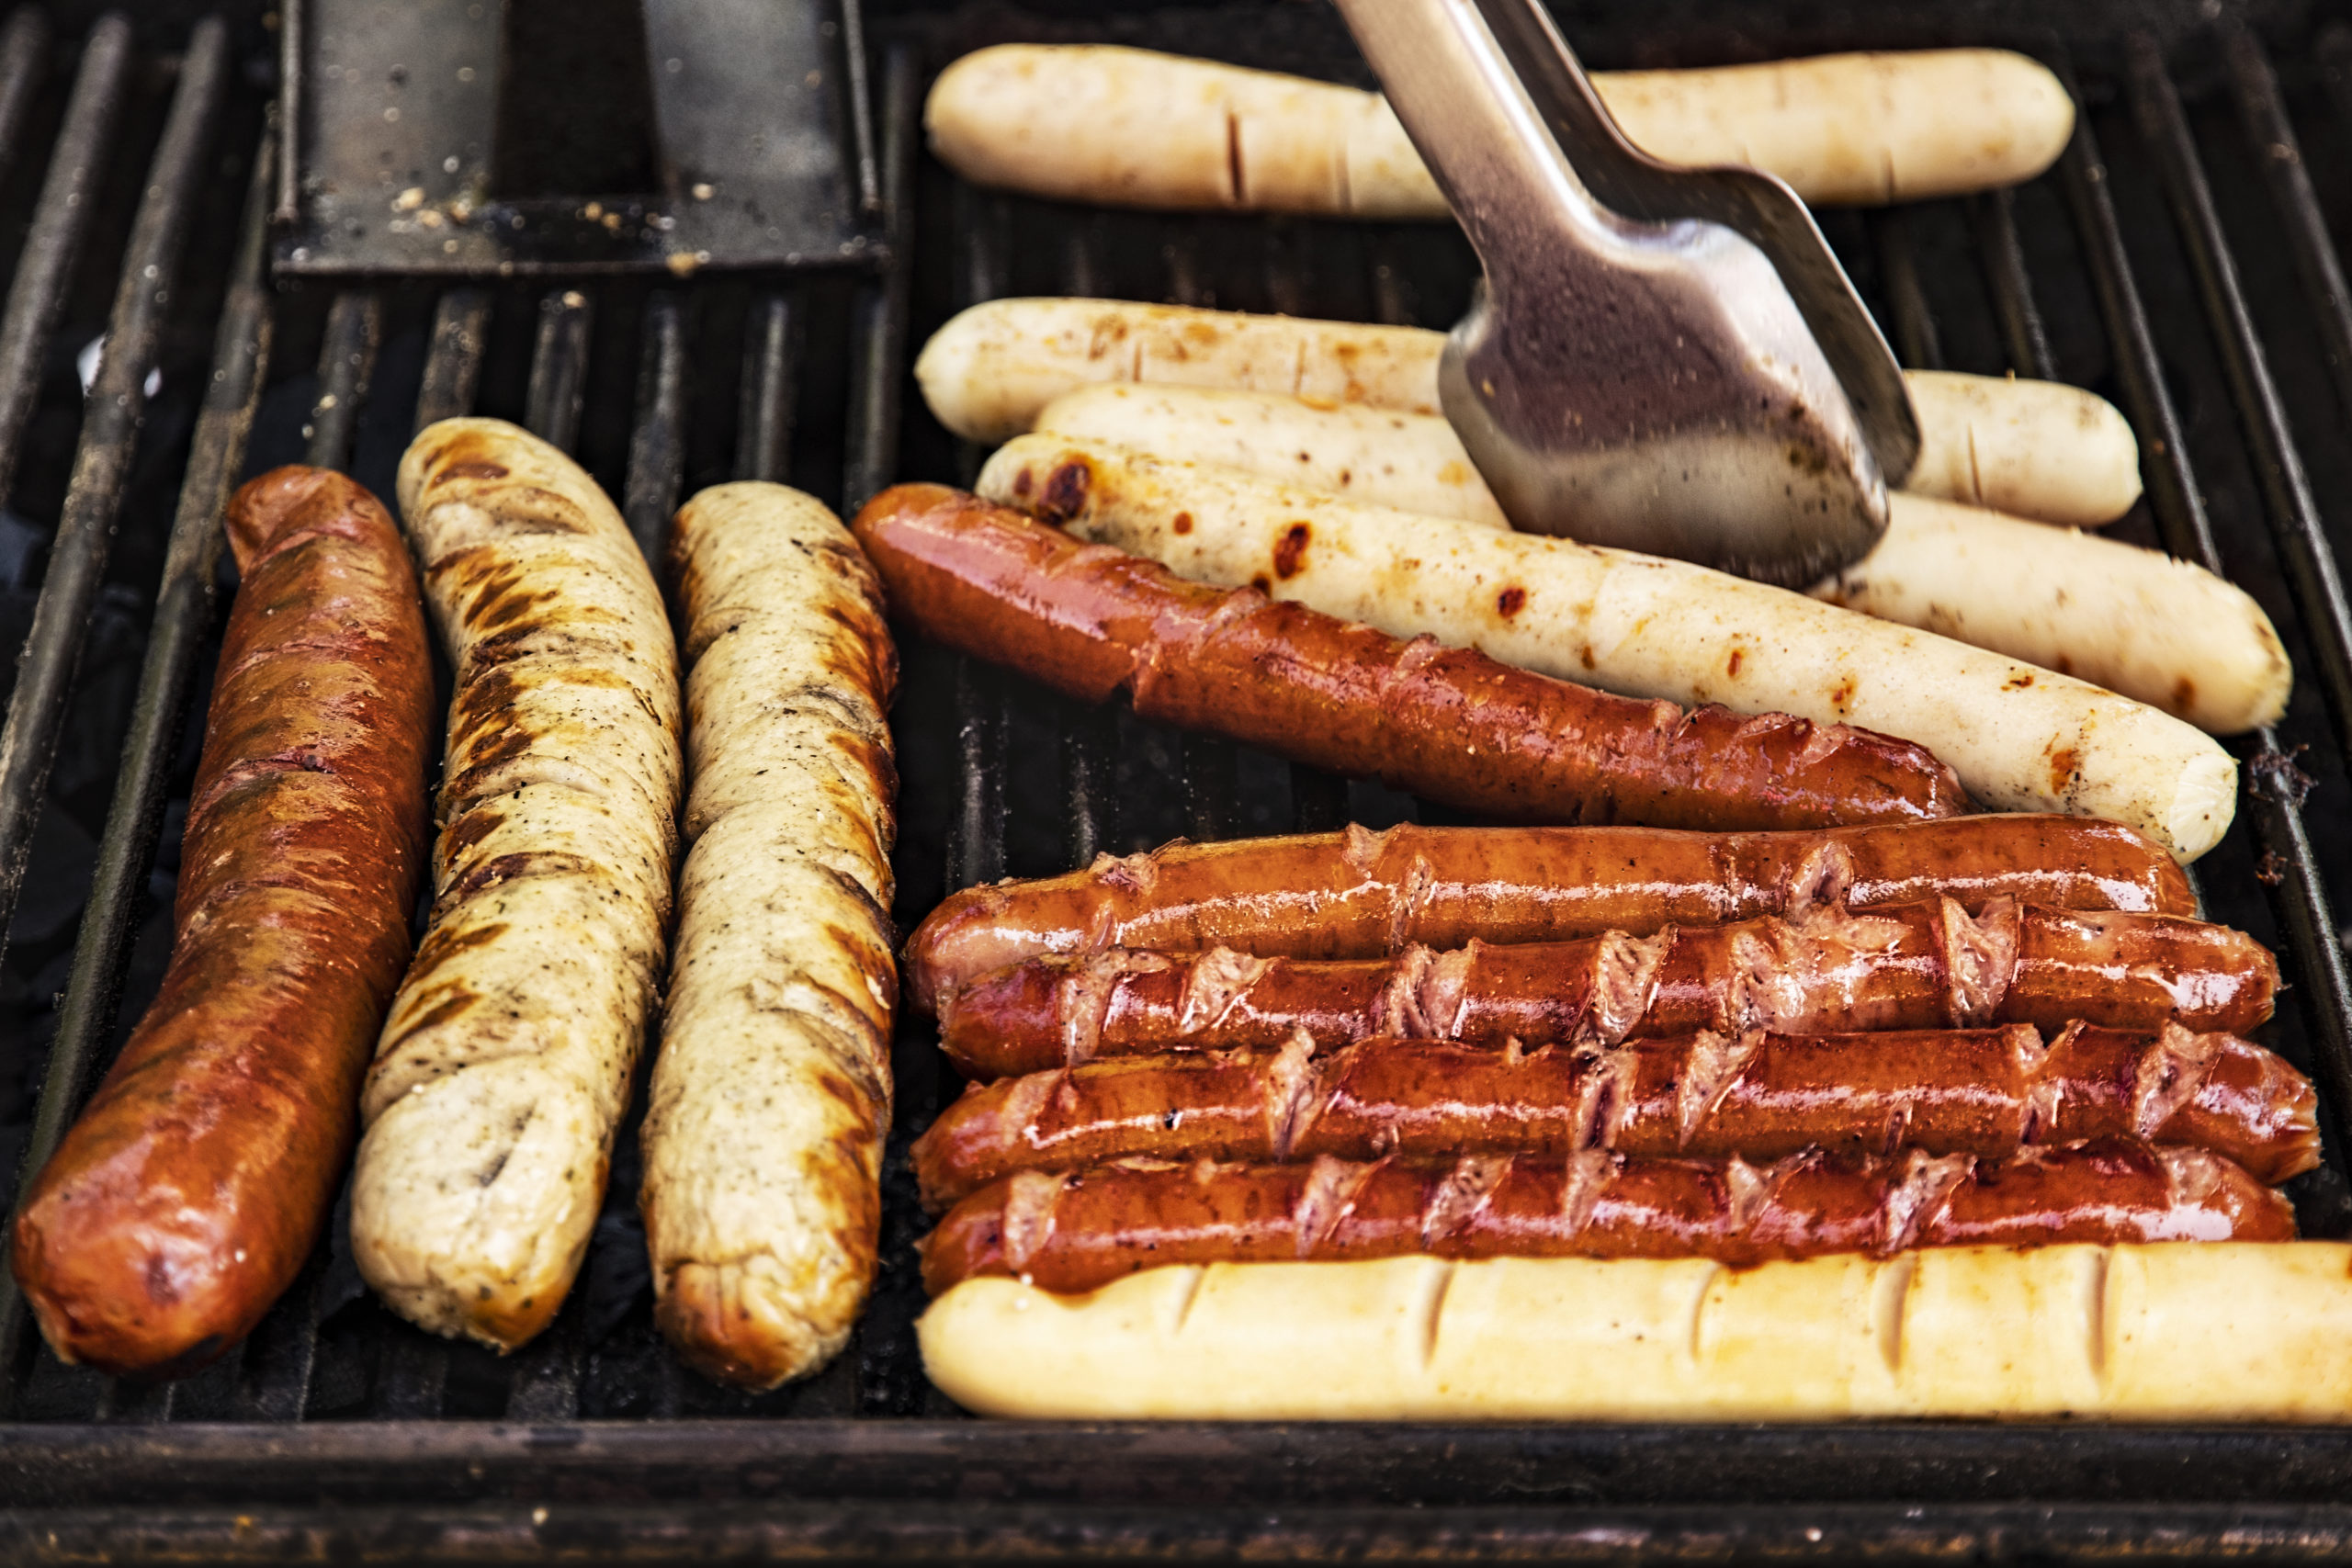 How Long to Cook Brats on the Grill